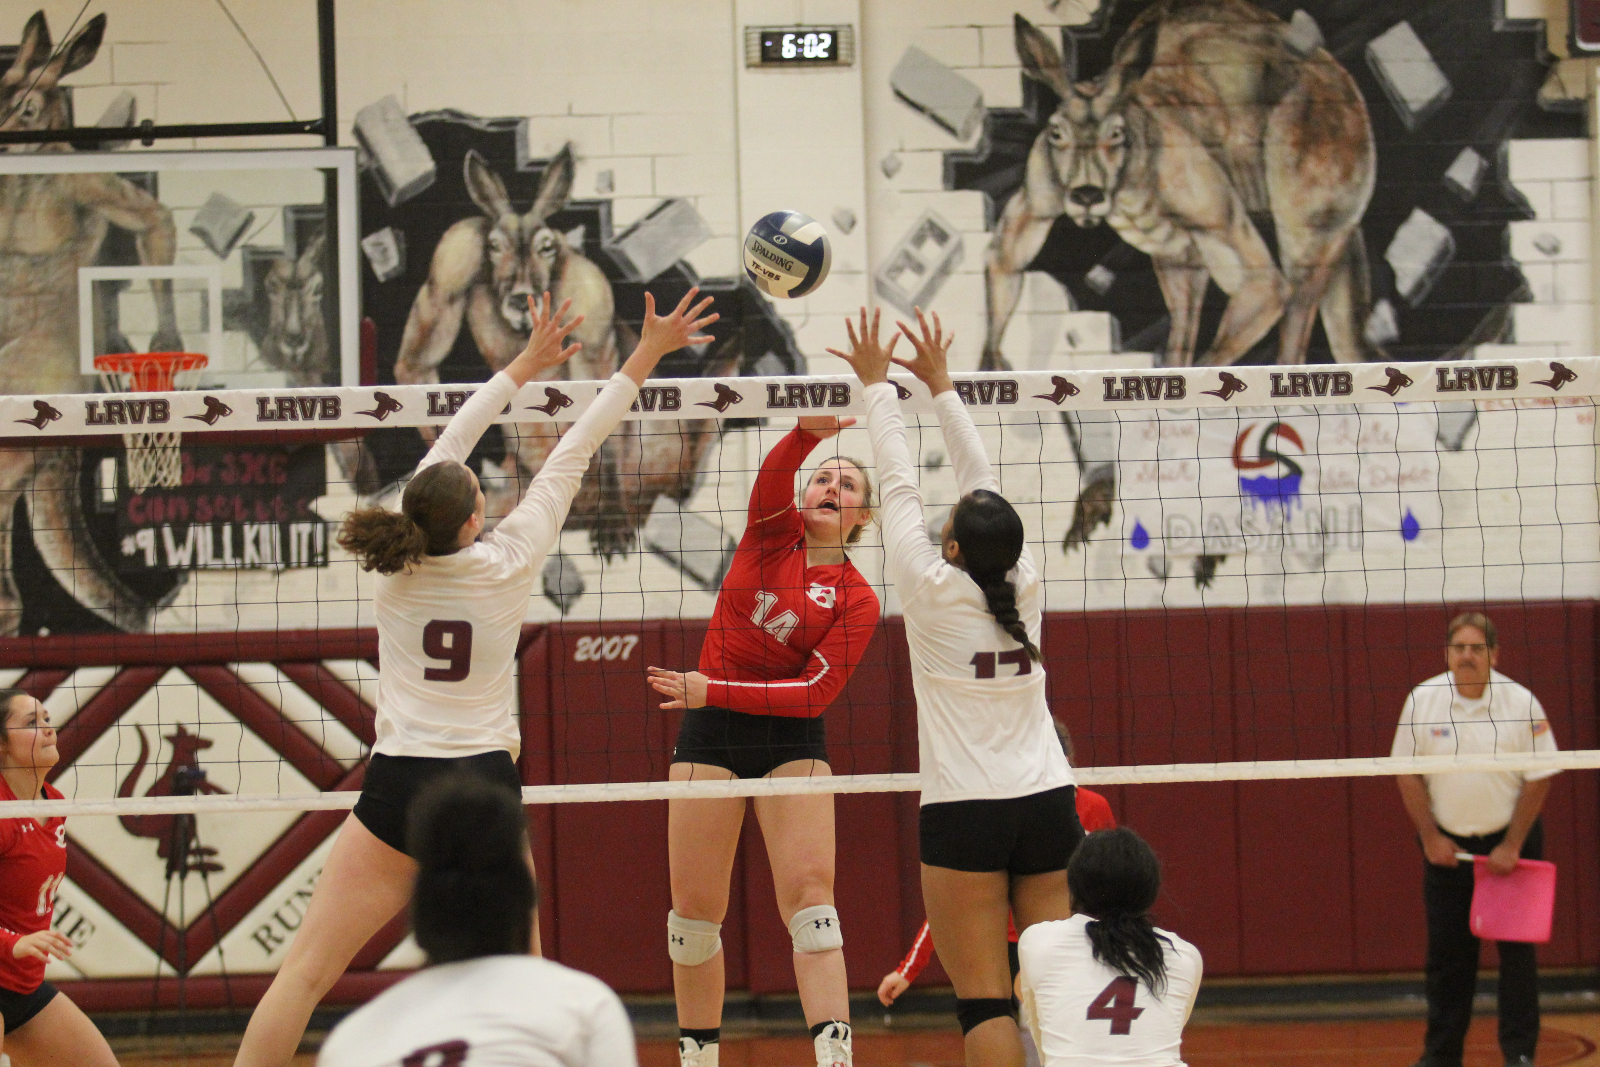 Lady Tigers end two-match slide with win over Killeen in four games